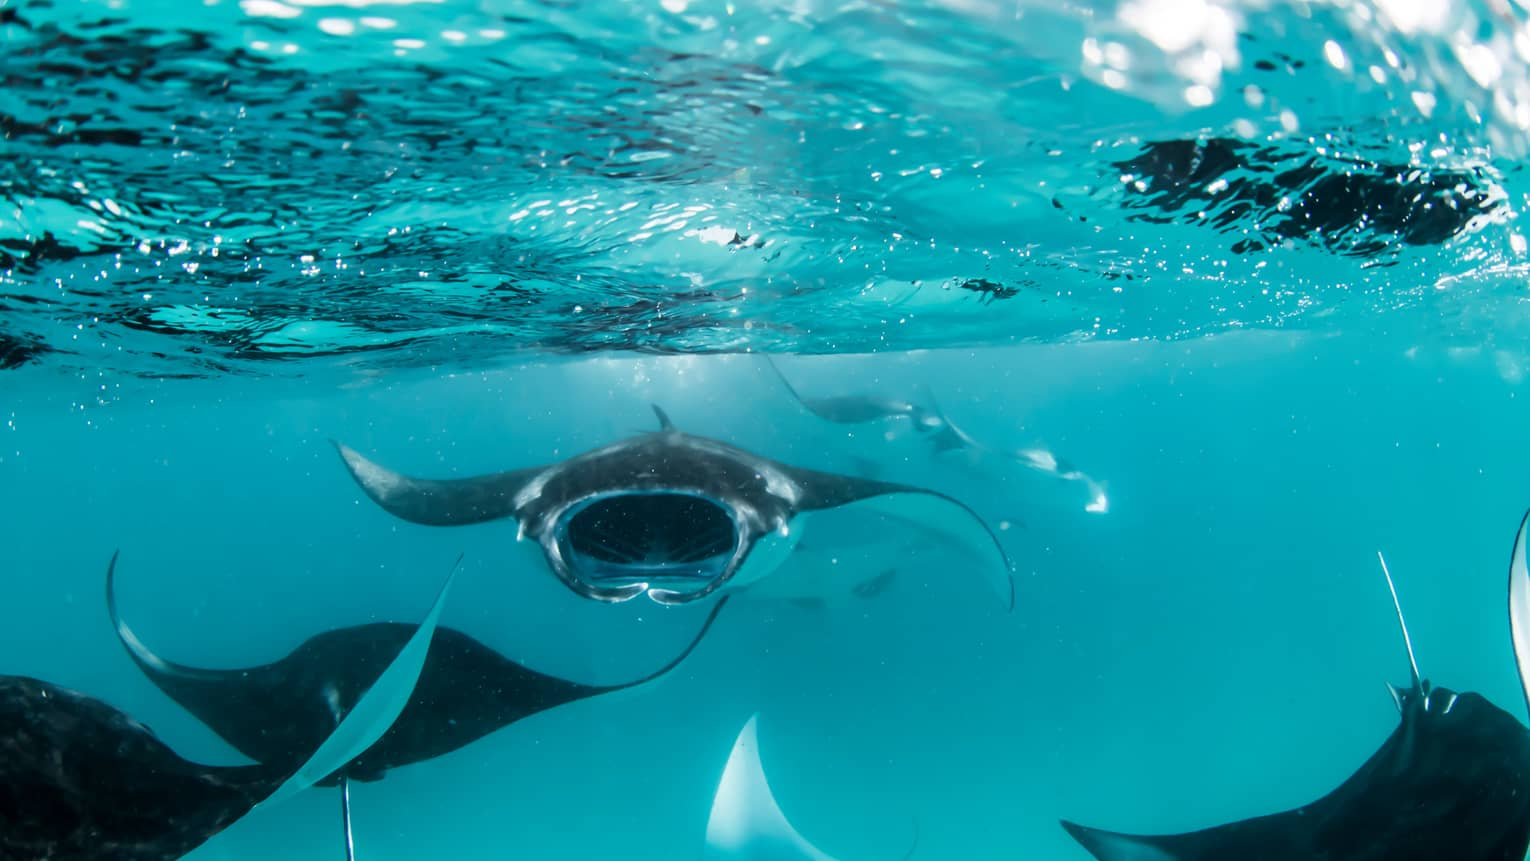 Manta rays swimming underwater